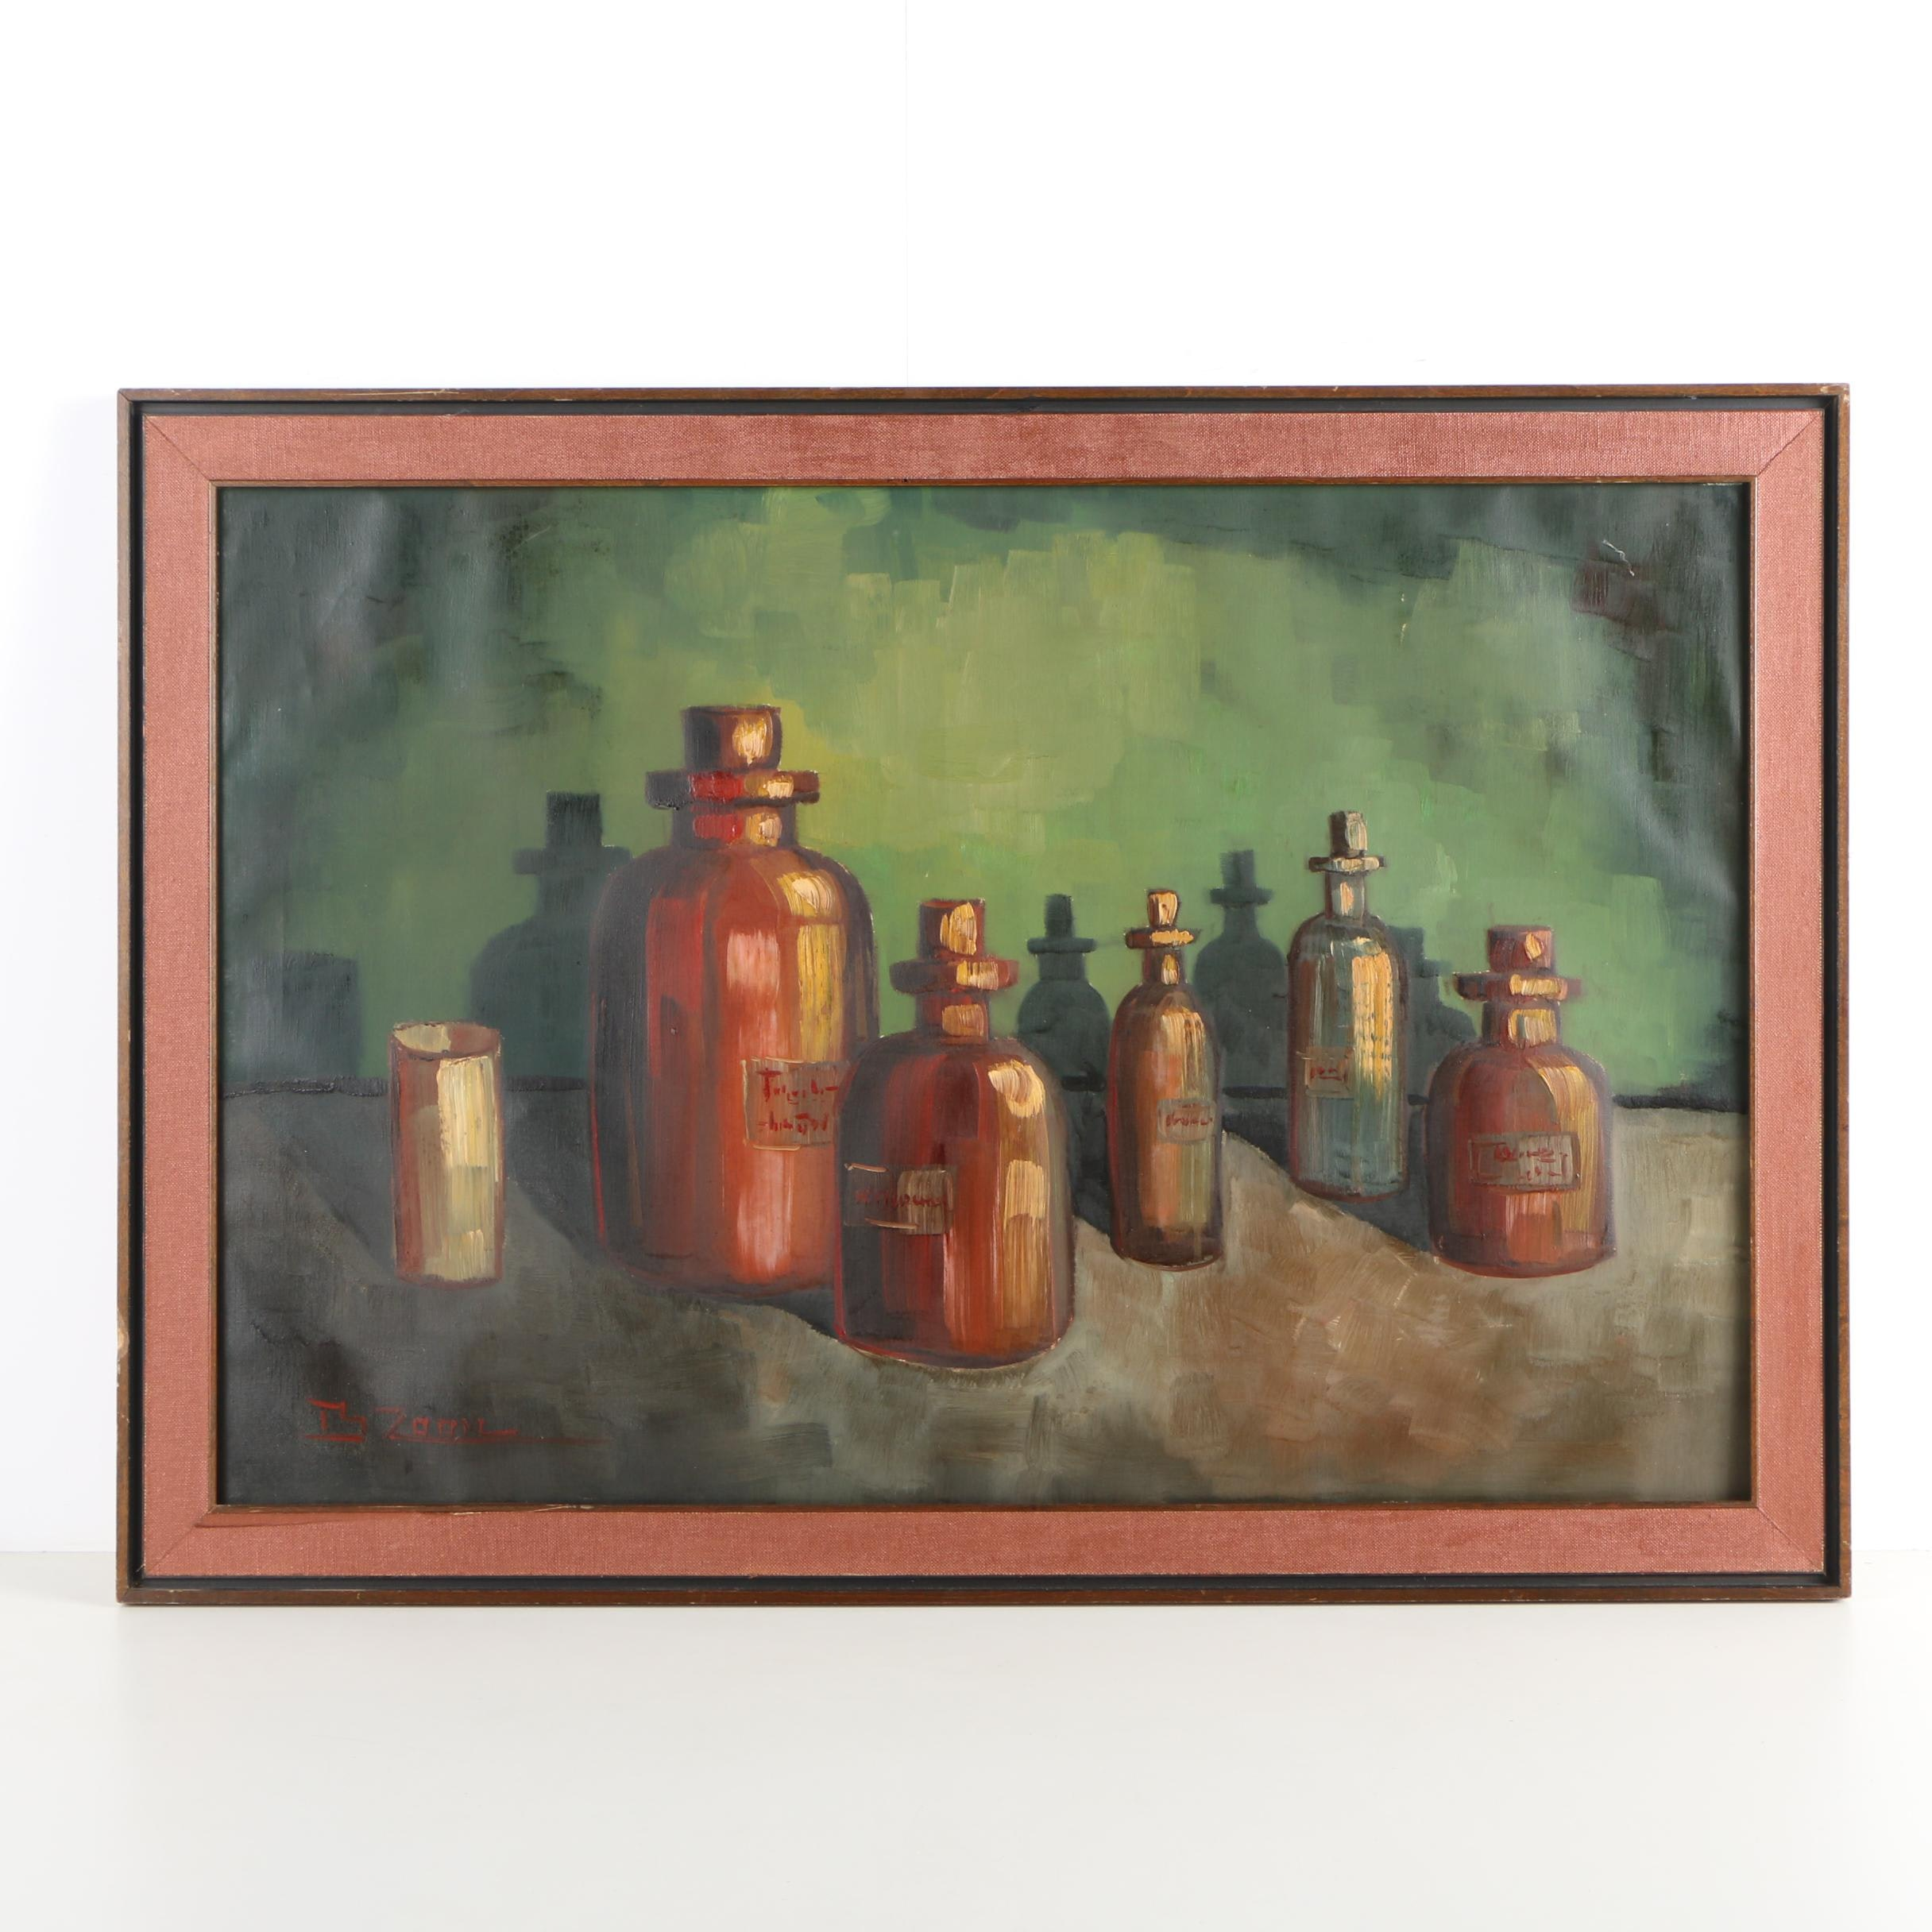 B. Zoom Oil Painting of Apothecary Bottles